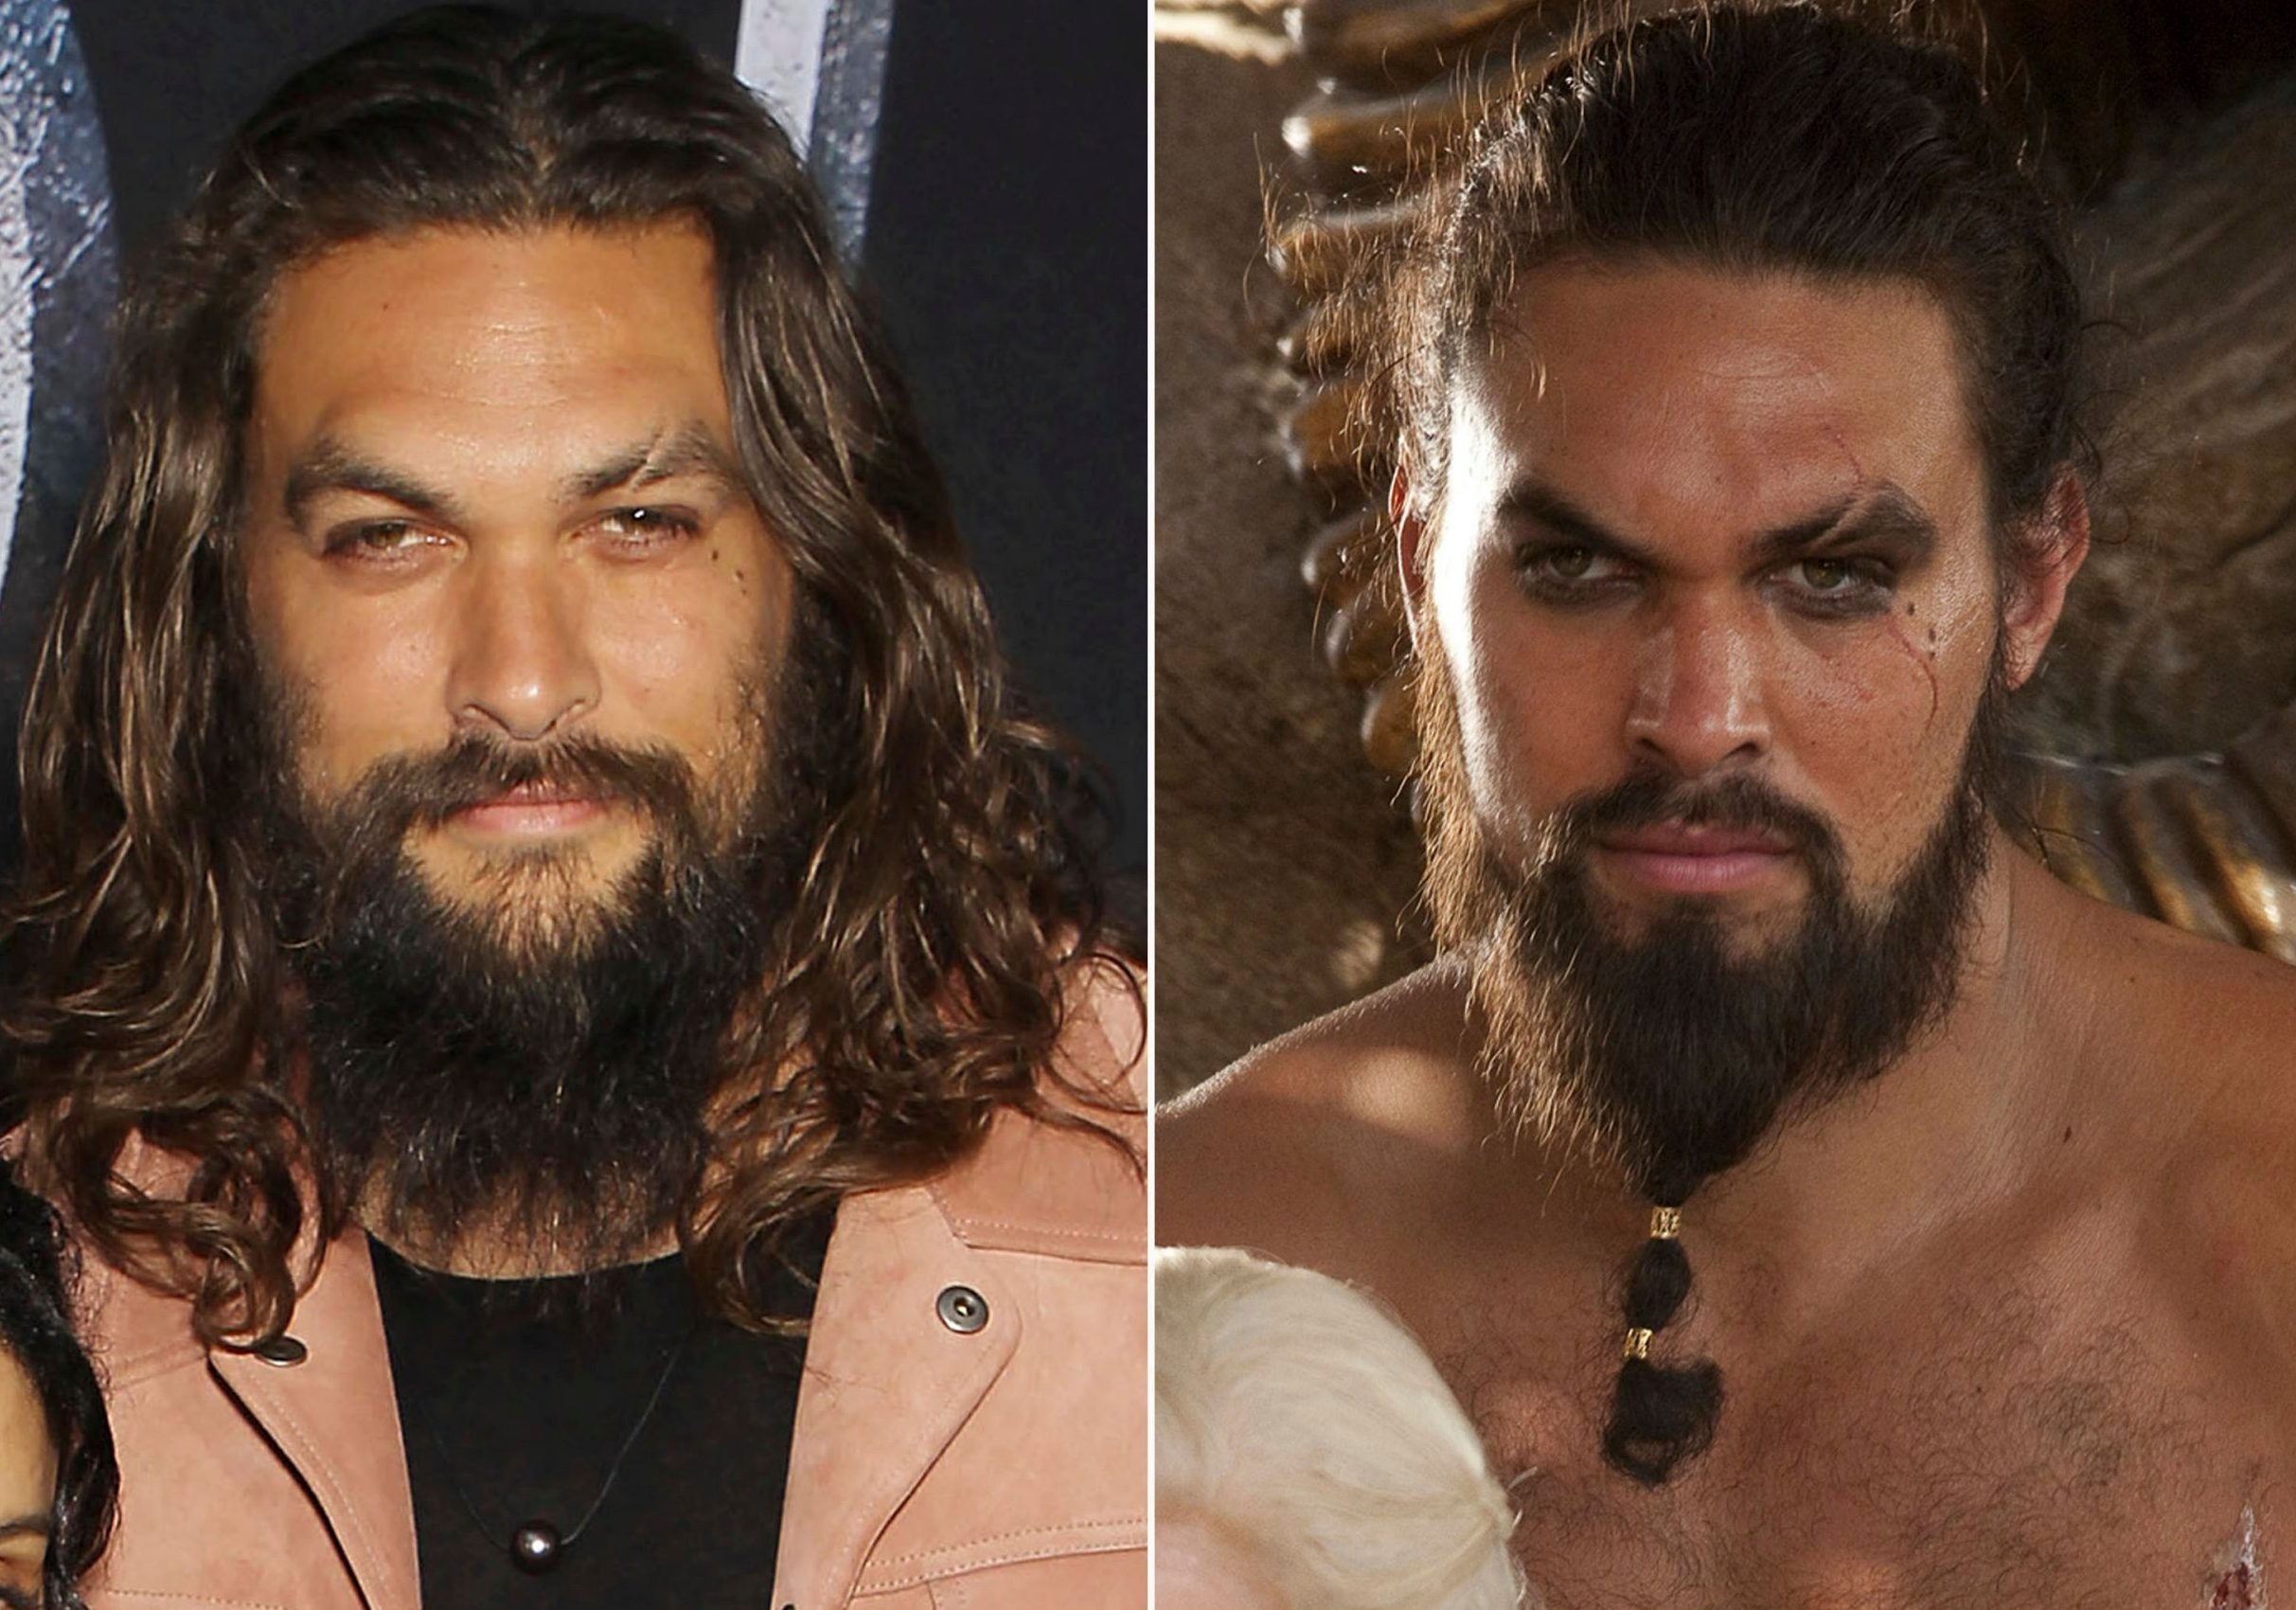 Jason Momoa slapped Game of Thrones boss so many times he ended up in hospital